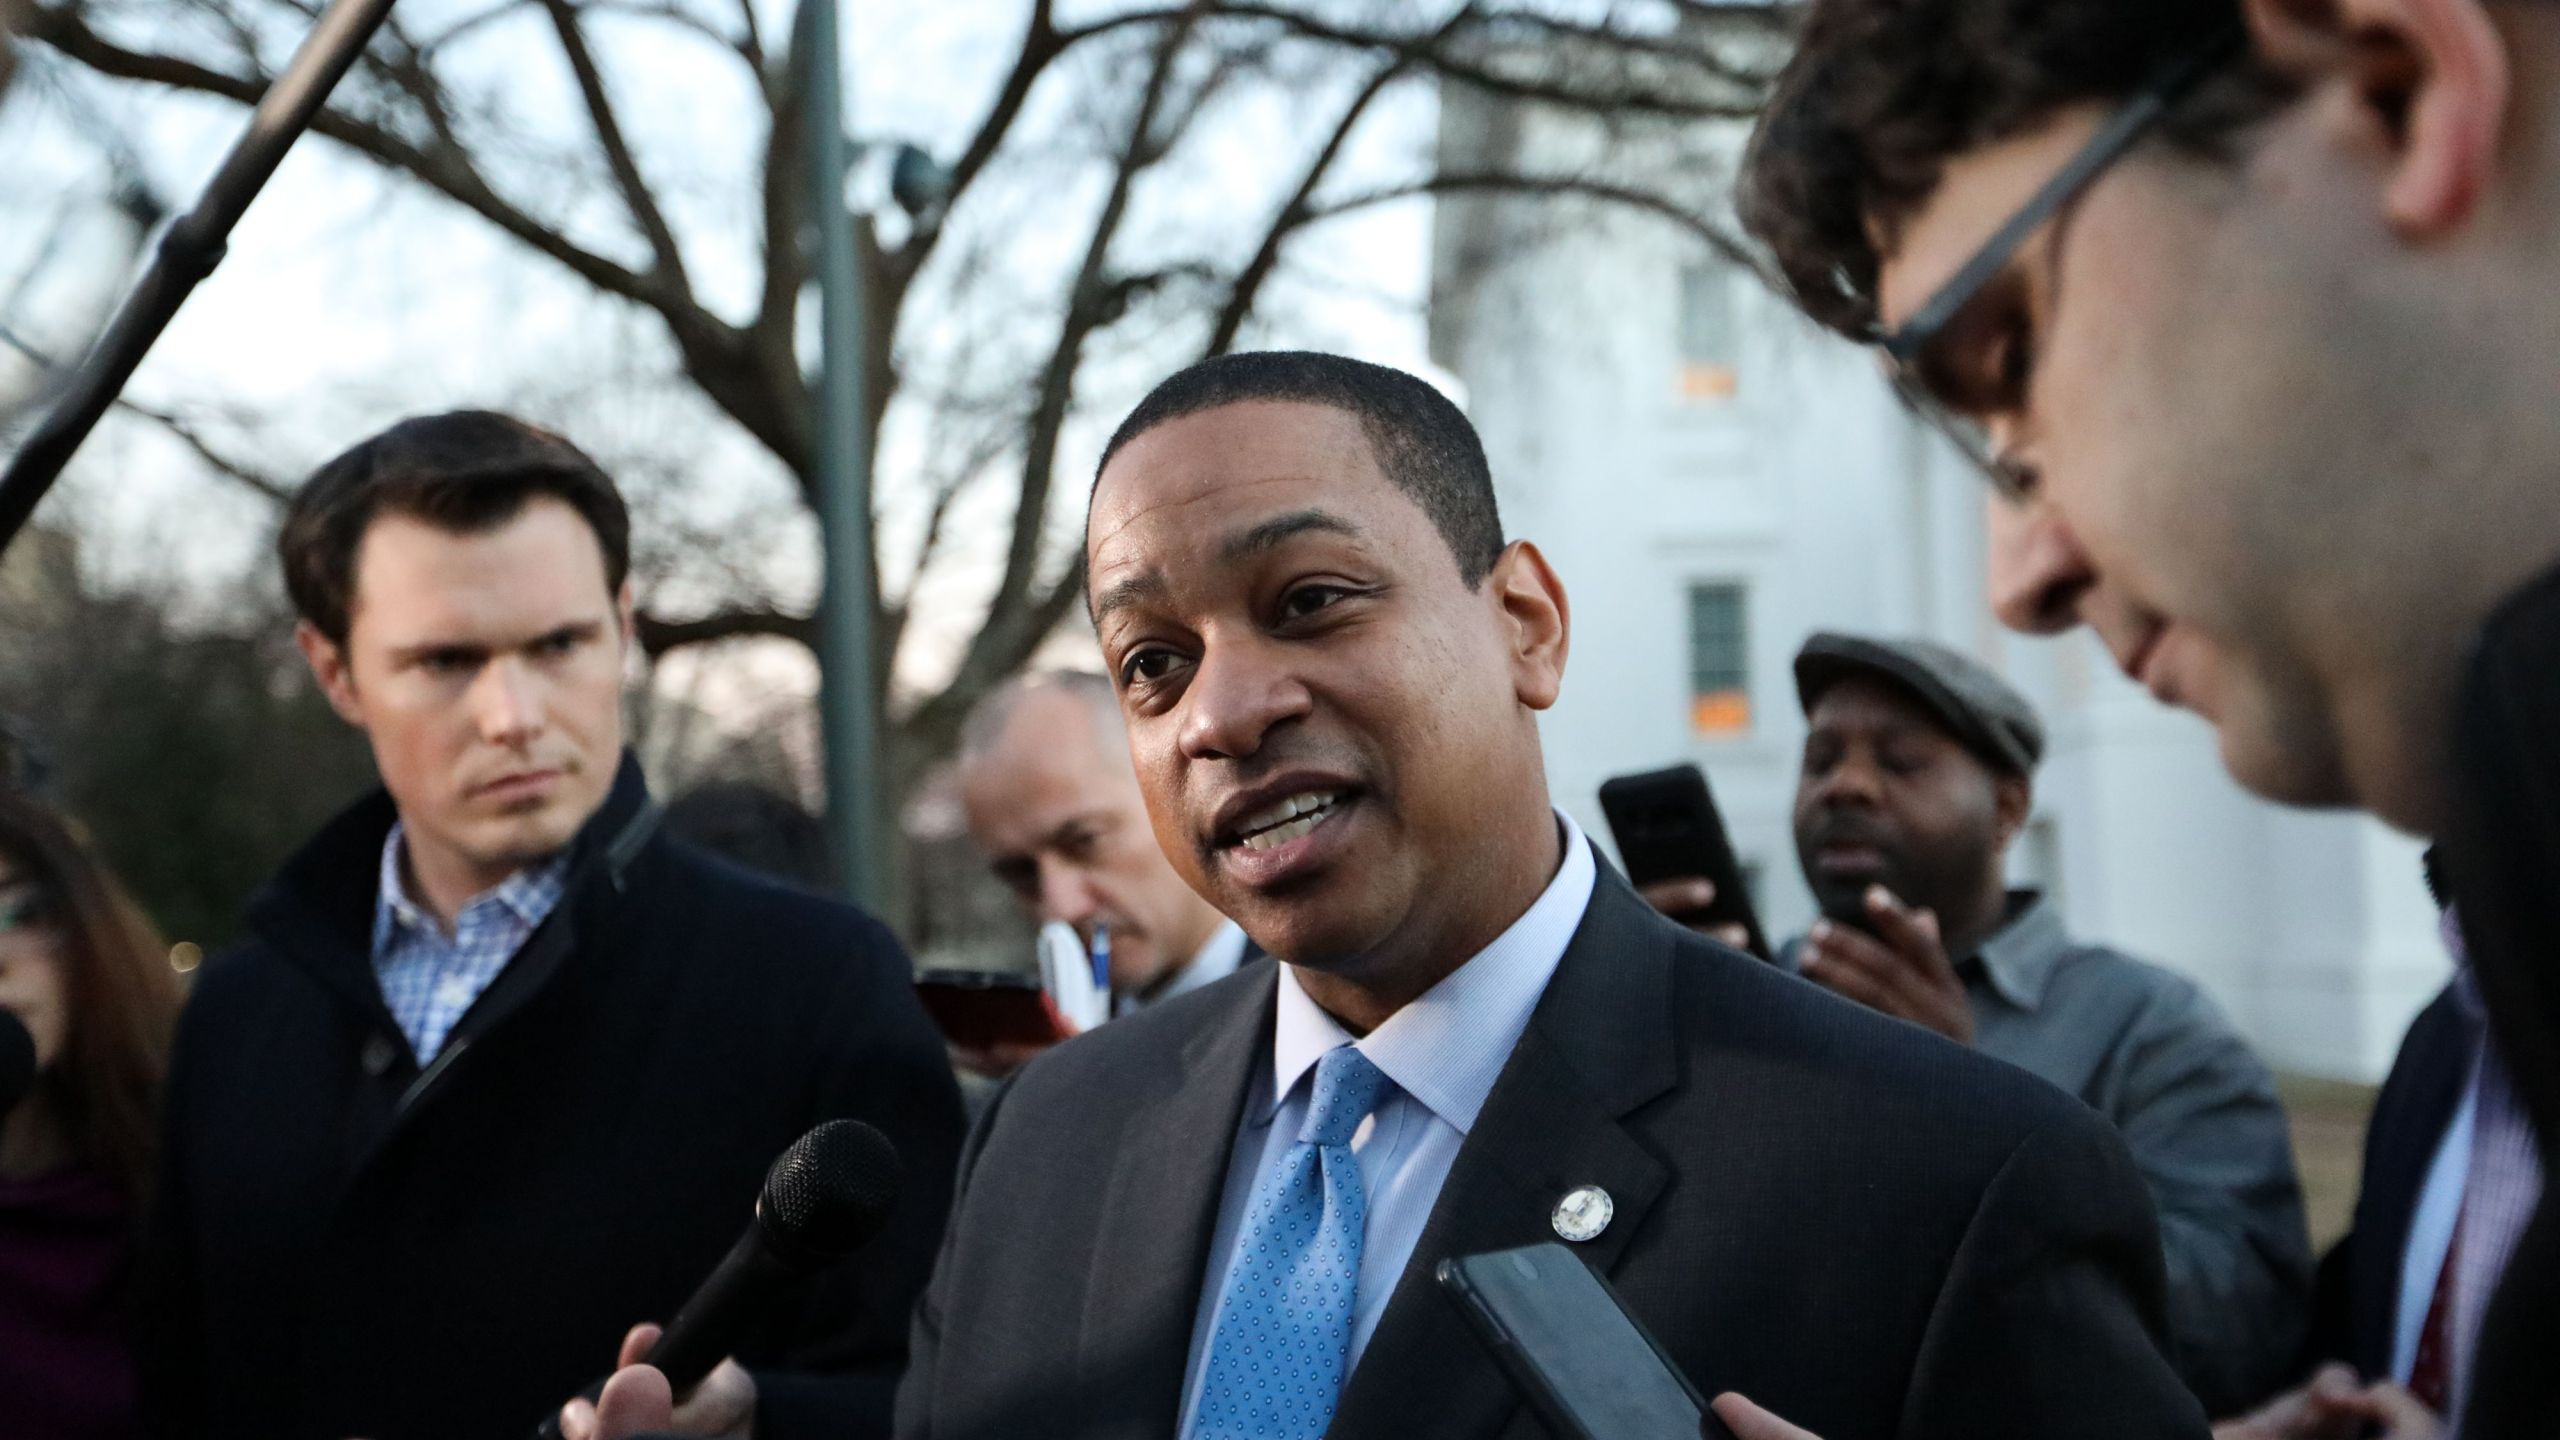 Virginia Lt. Gov. Justin Fairfax addresses the media about a sexual assualt allegation from 2004 outside of the capital building in downtown Richmond on Feb. 4, 2019. (Credit: LOGAN CYRUS/AFP/Getty Images)